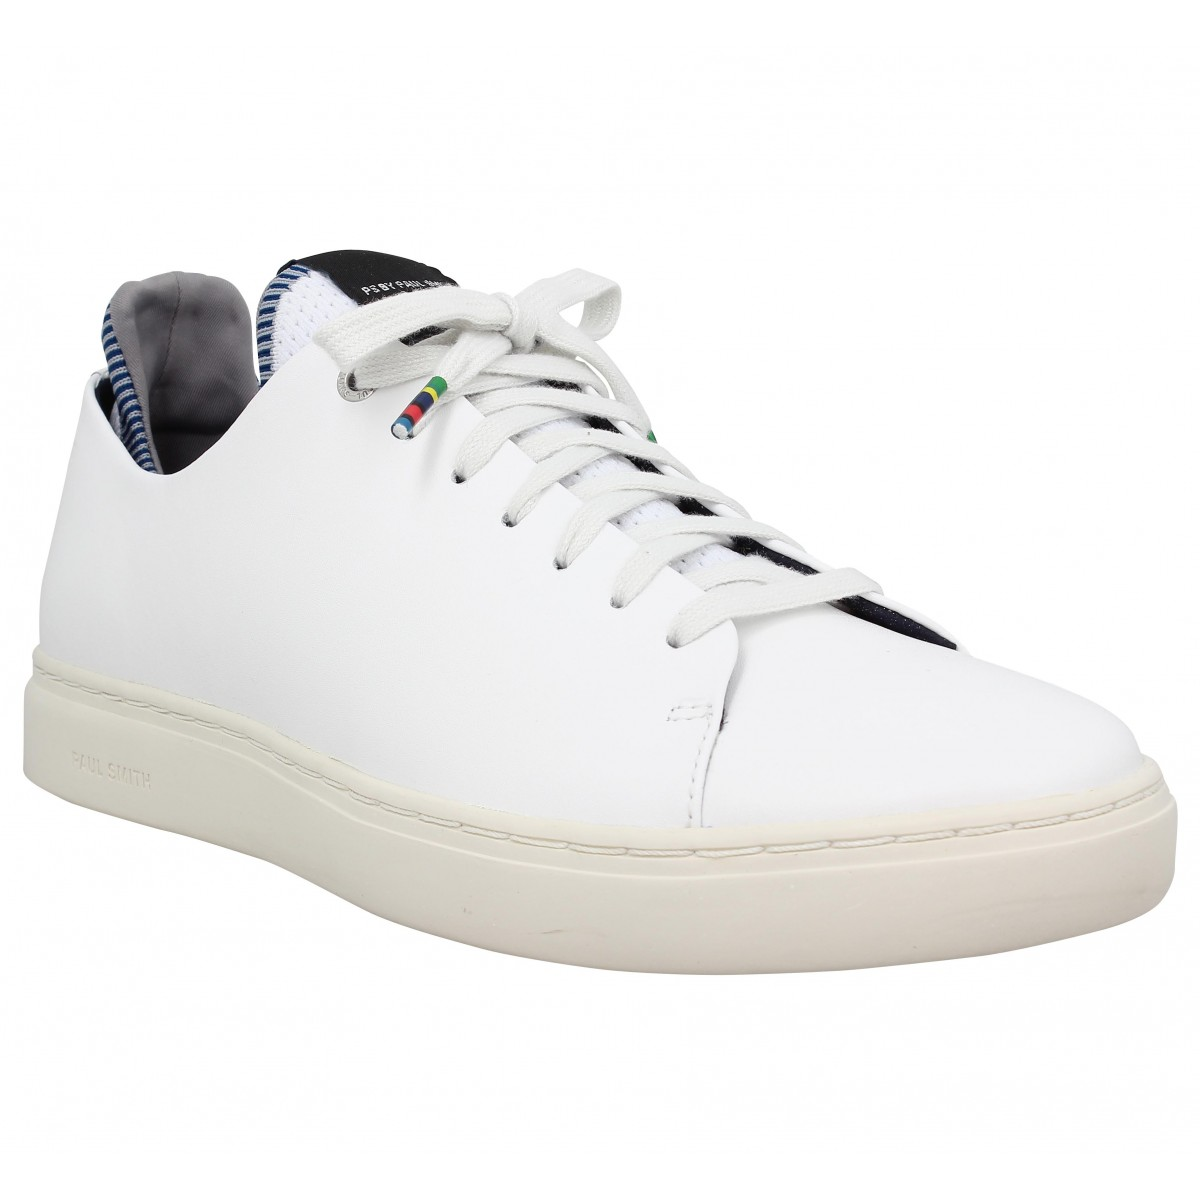 Paul Smith Homme Sonix Cuir -39-blanc